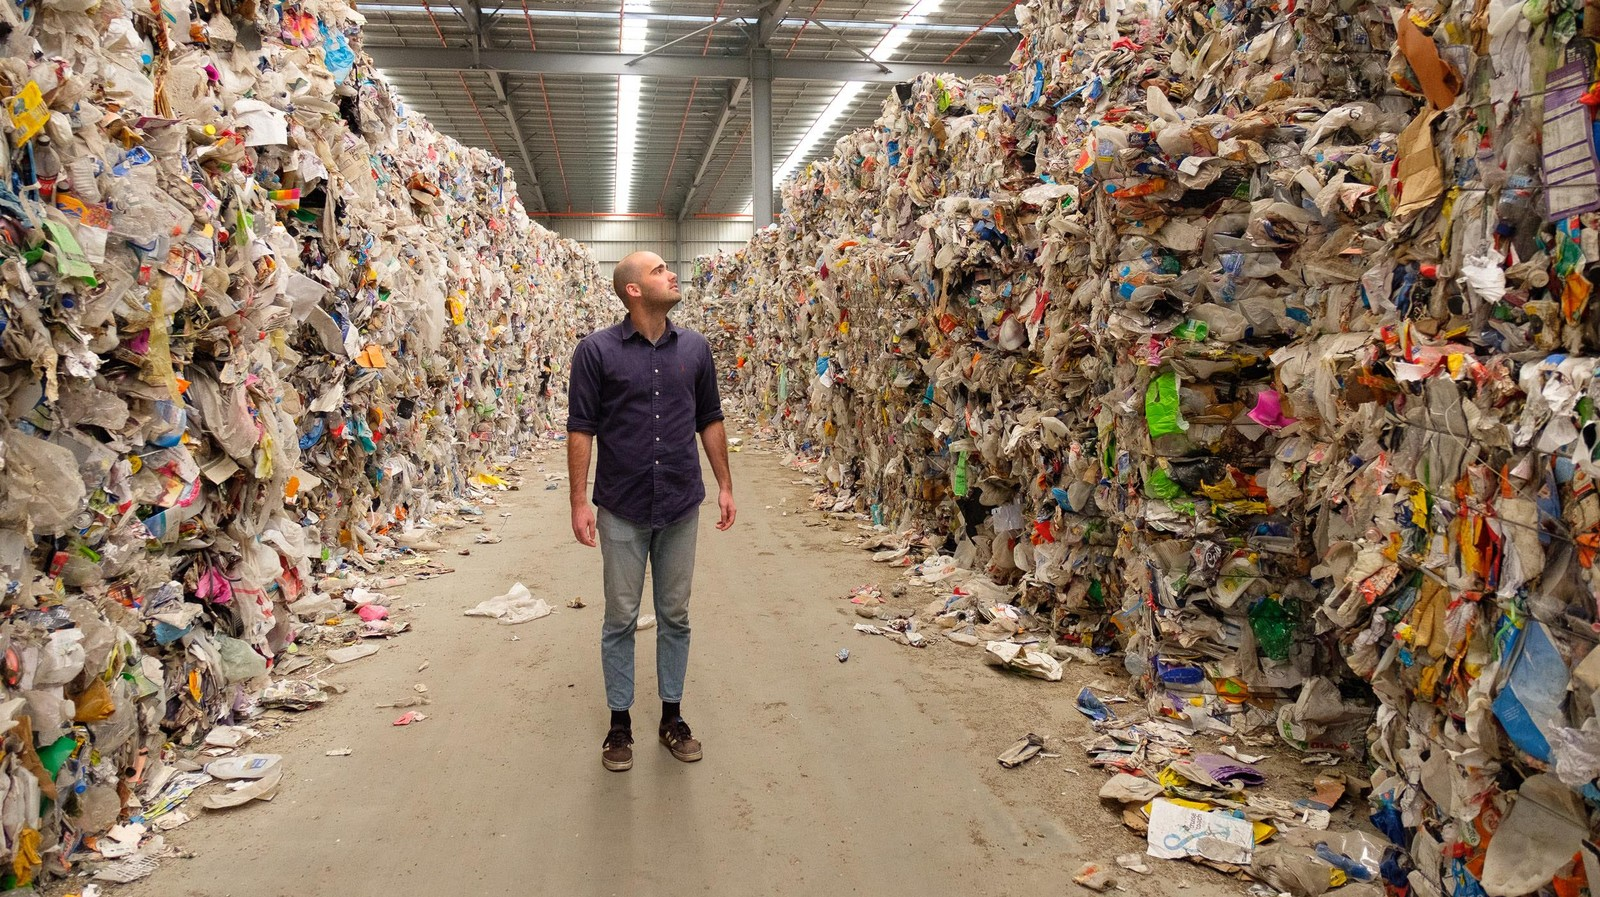 This Is What Australia's Recycling Crisis Looks Like